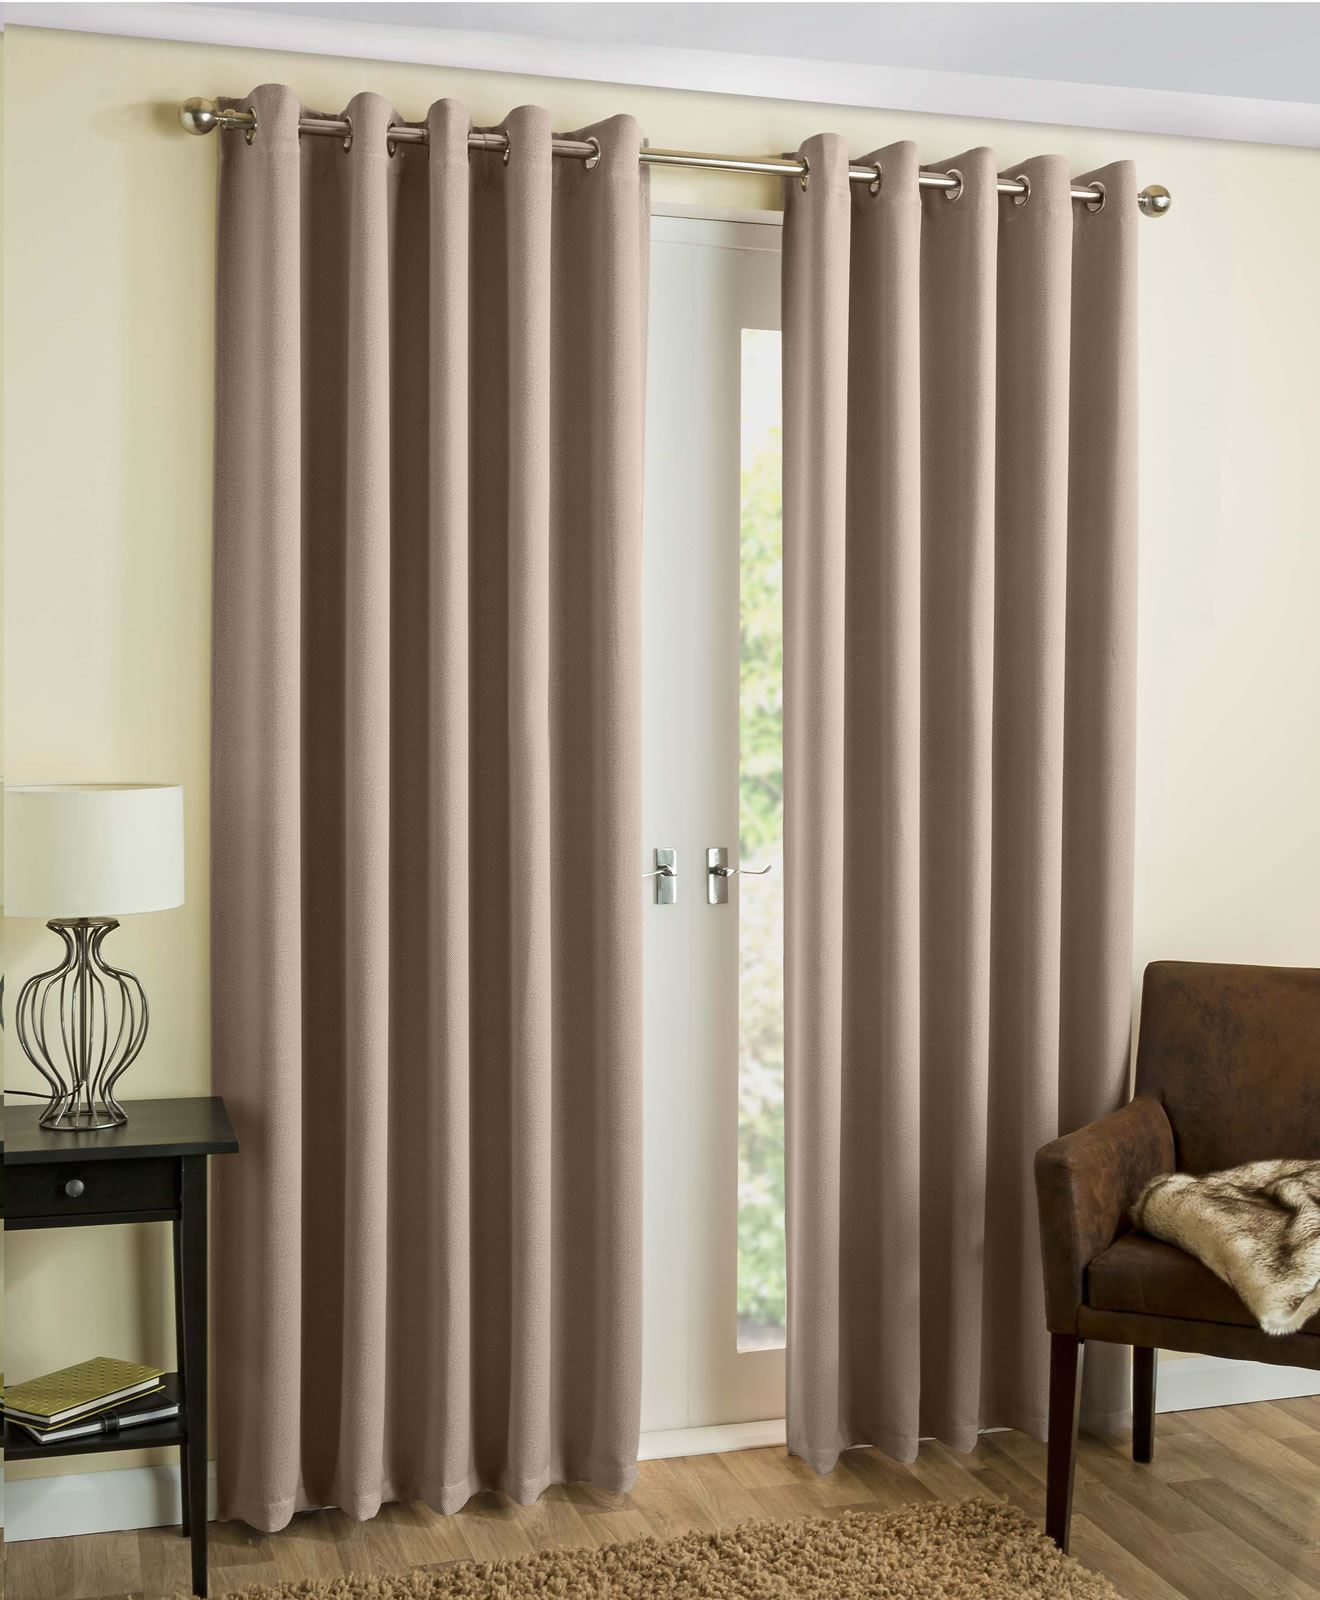 Thermal curtains grey - Byron Thermal Blockout Eyelet Curtains Herringbone Print Charcoal